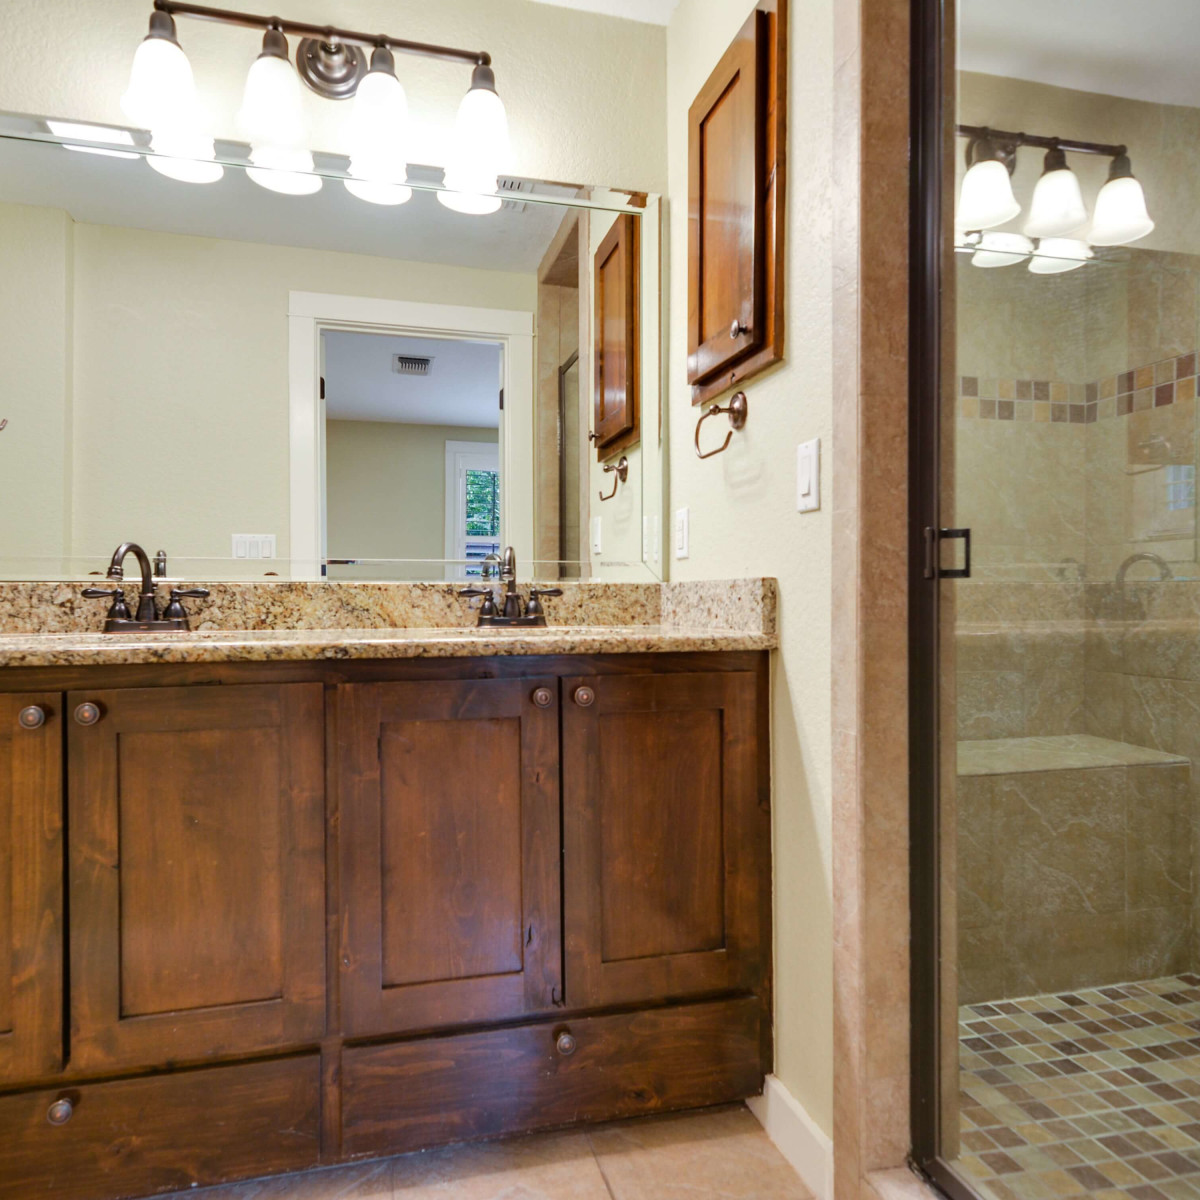 280 E Fair Oaks San Antonio house for sale bathroom